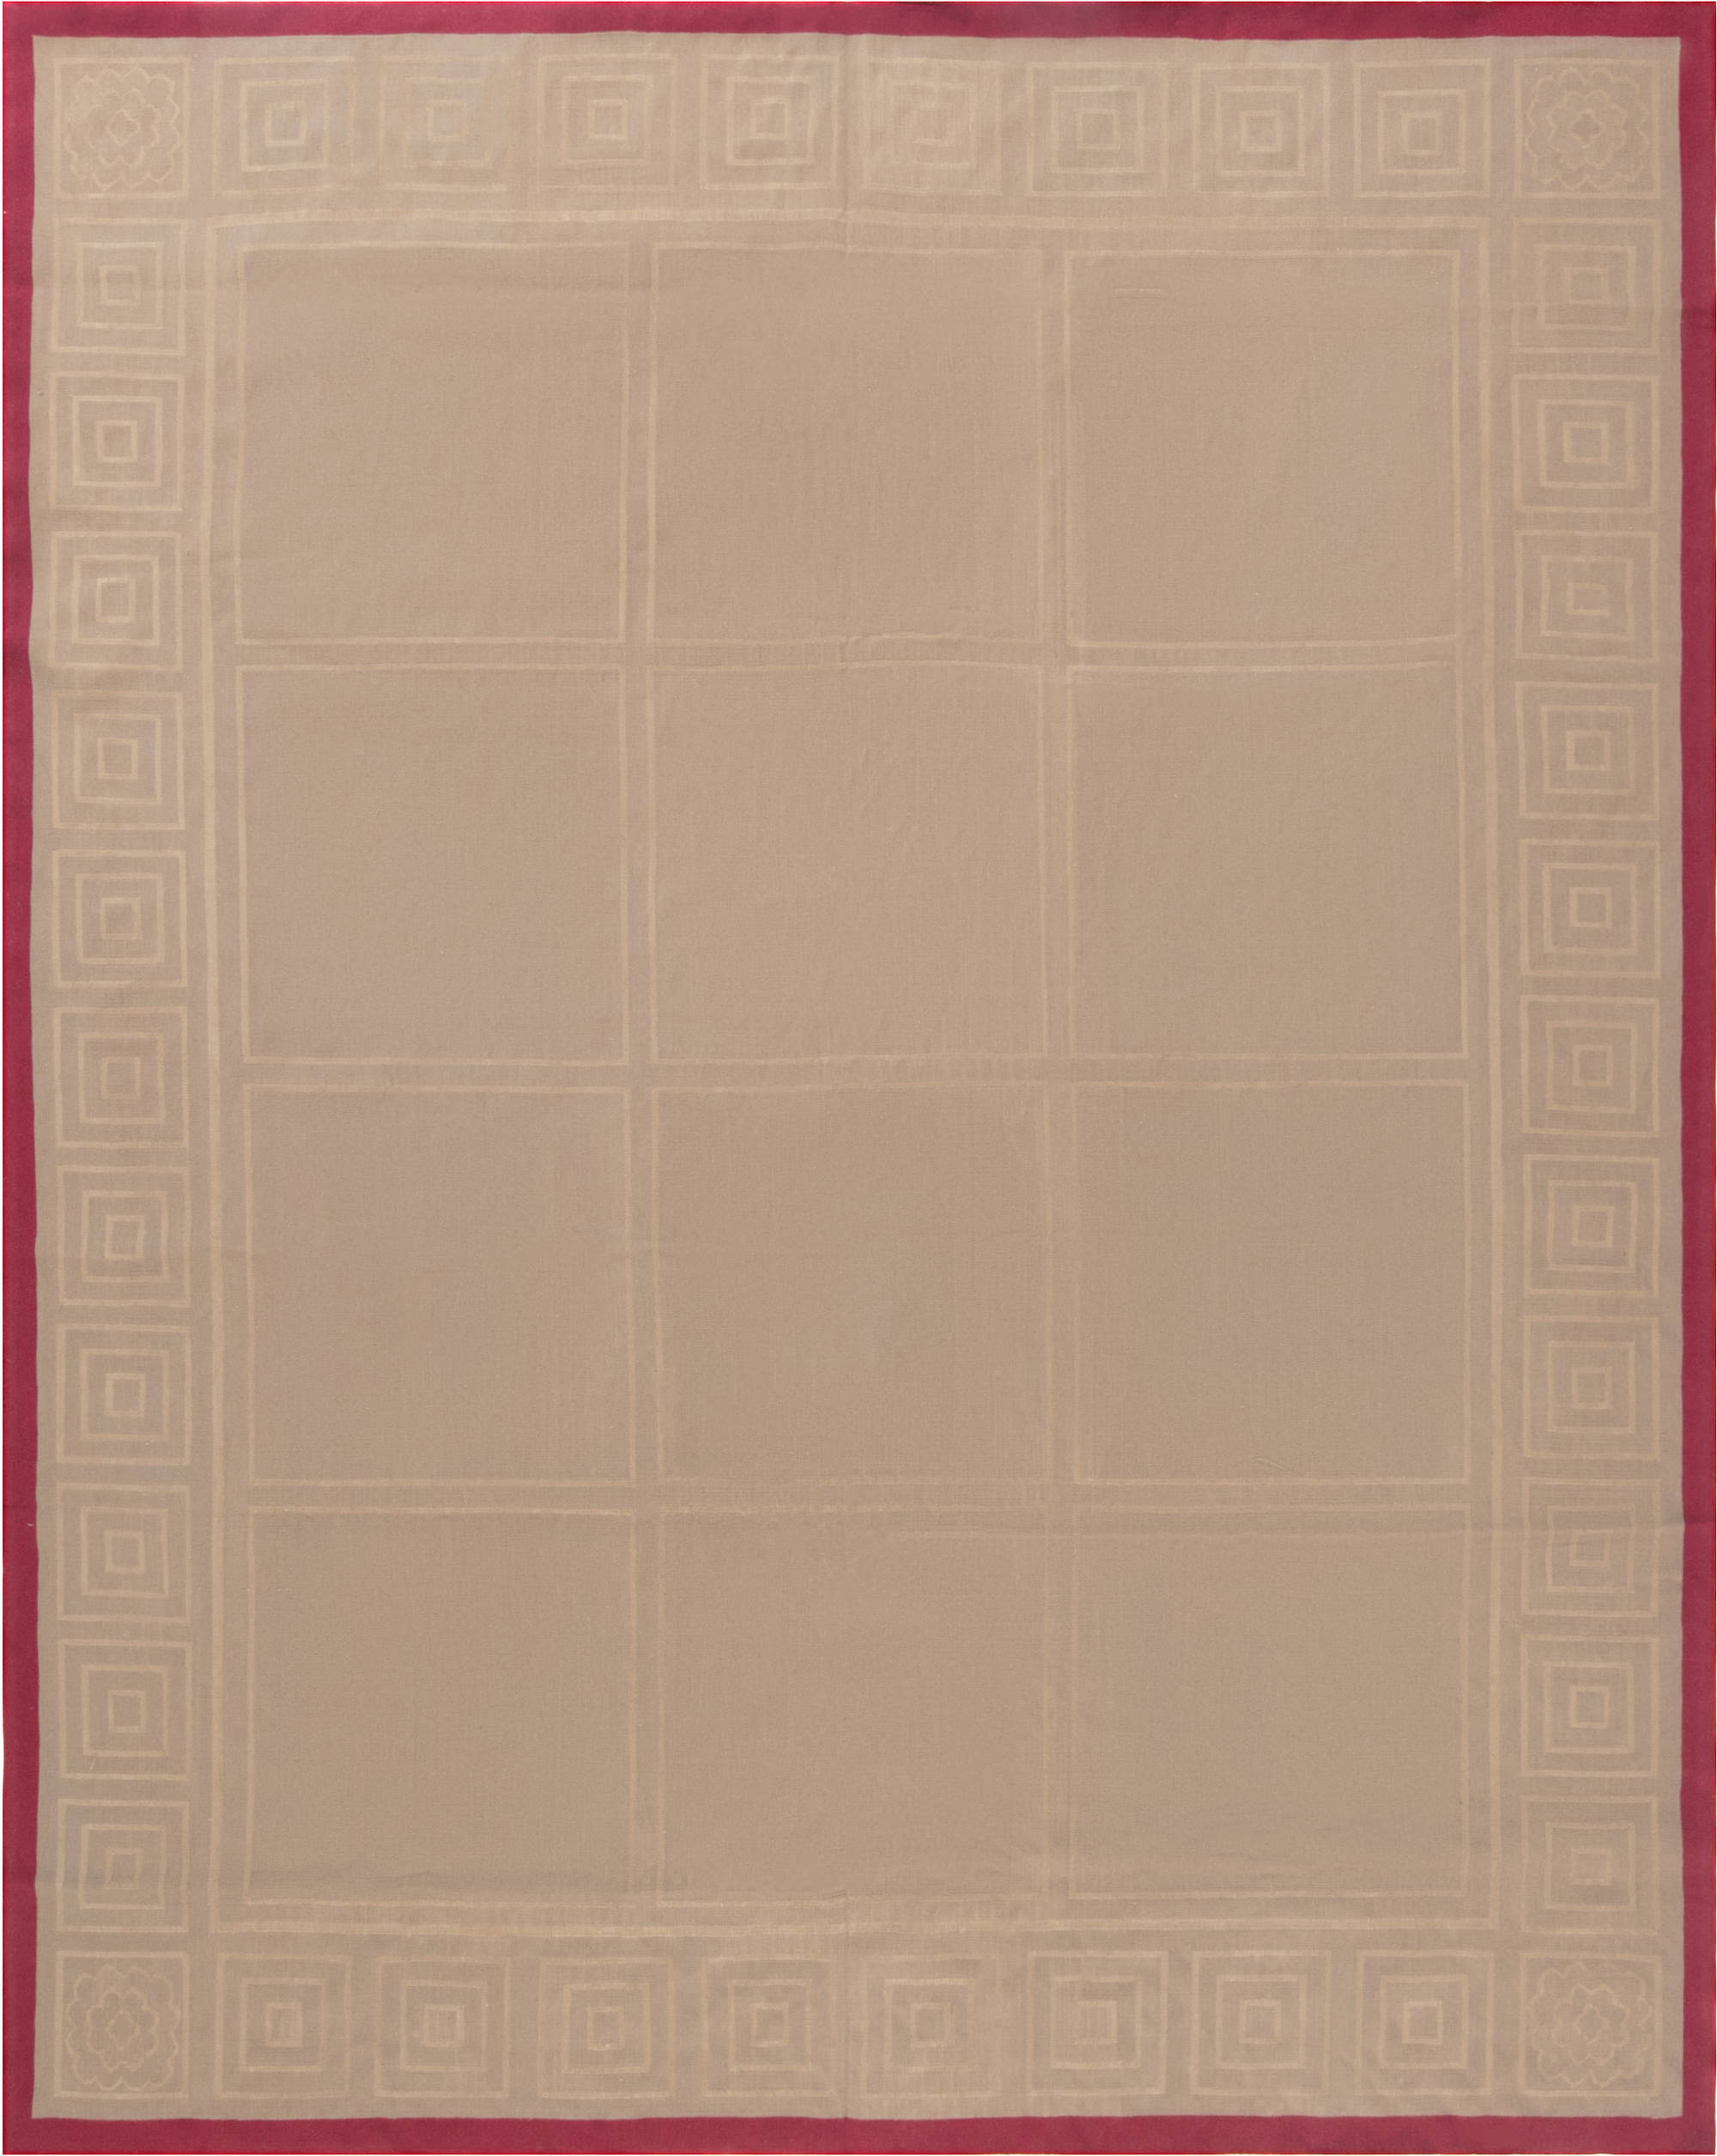 Aubusson Rug by Mariette Himes Gomez N11920